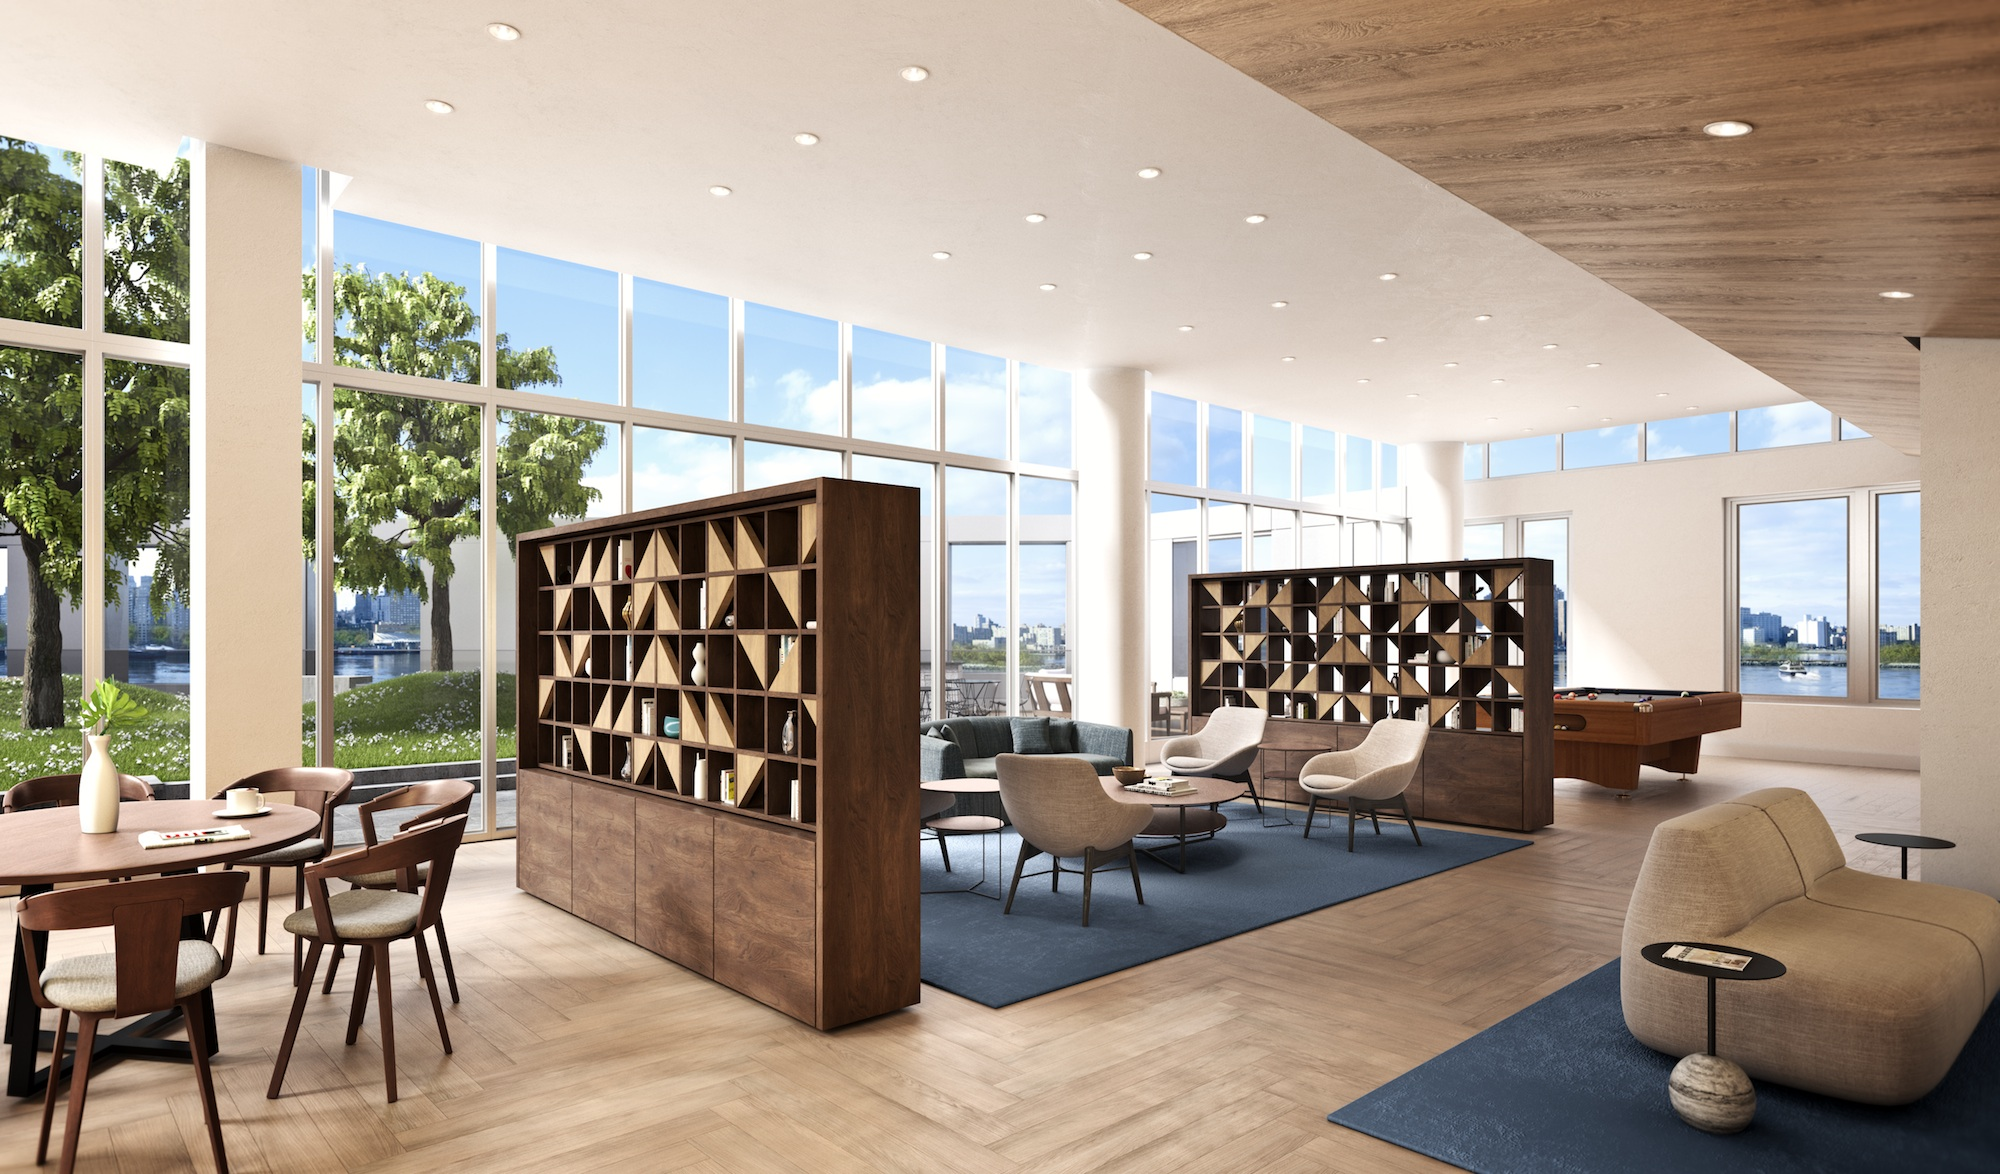 The Durst Organization Releases New Renderings Of 10 Halletts Point At Halletts Point Megaproject in Astoria